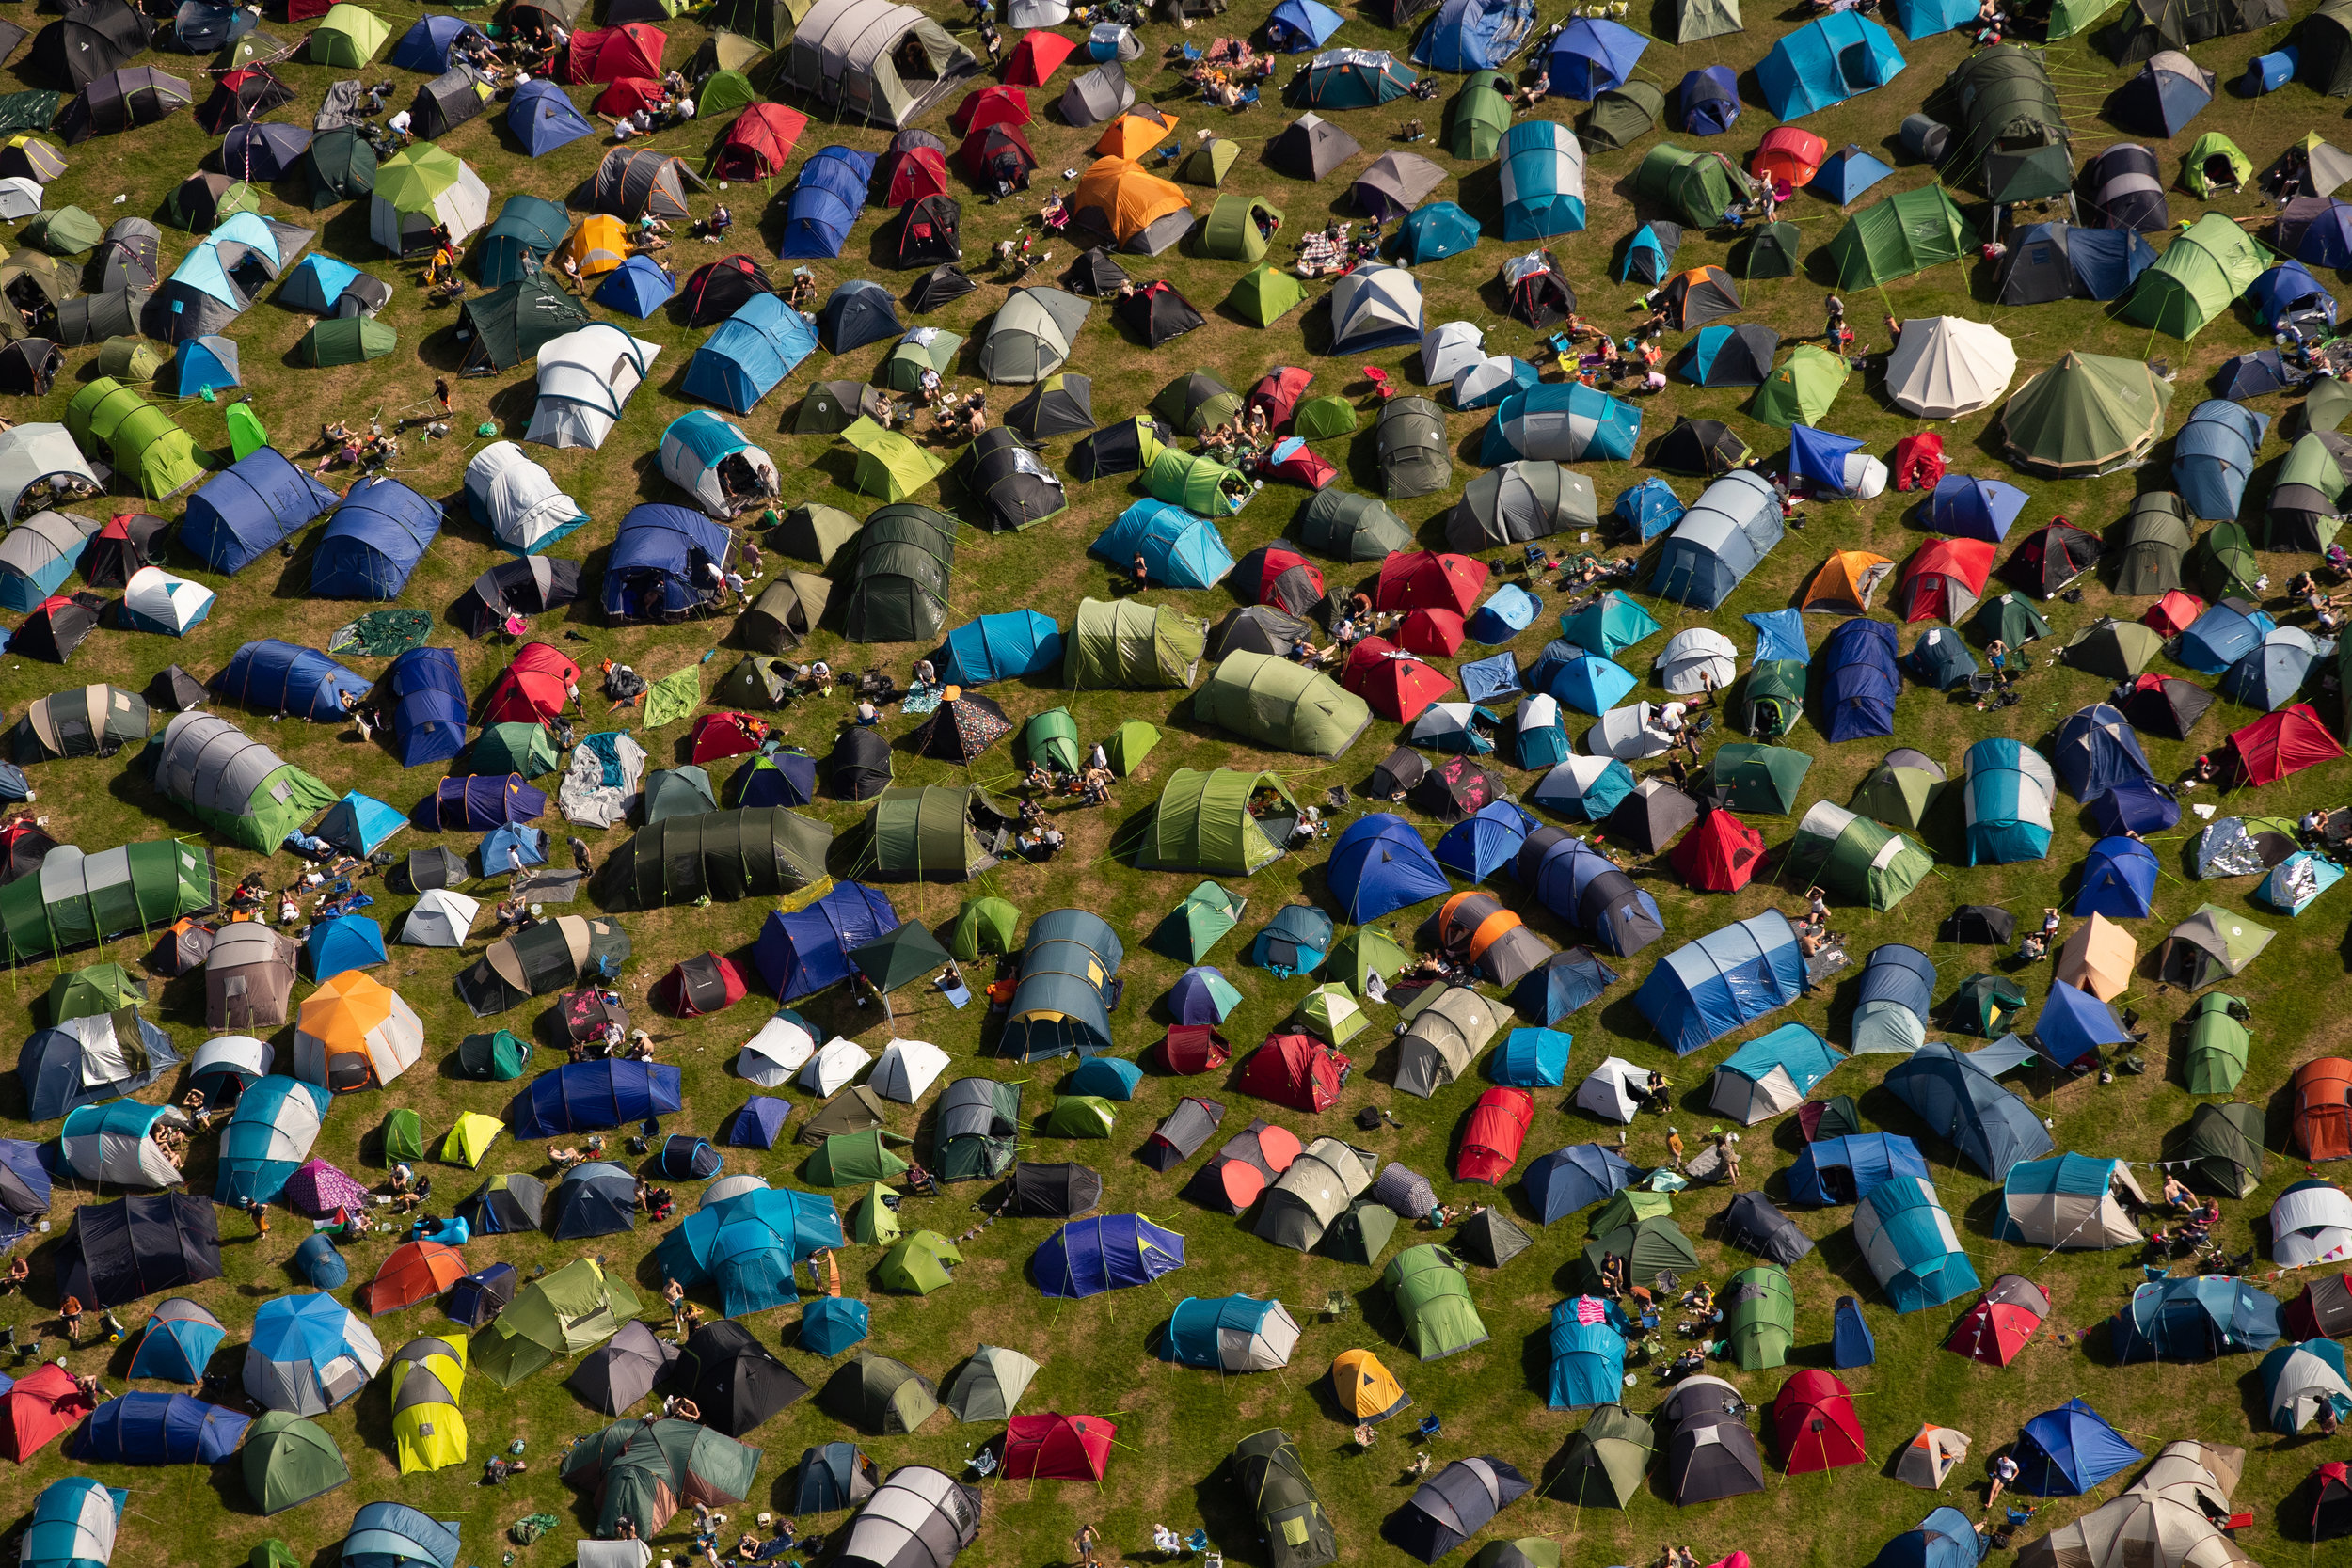 An aerial view of tents at the camping site for Glastonbury Festival at Worthy Farm in Somerset, England. The five day performing arts and music event Glastonbury Festival has officially opened, transforming the Somerset farm into a city for many thousands of people.